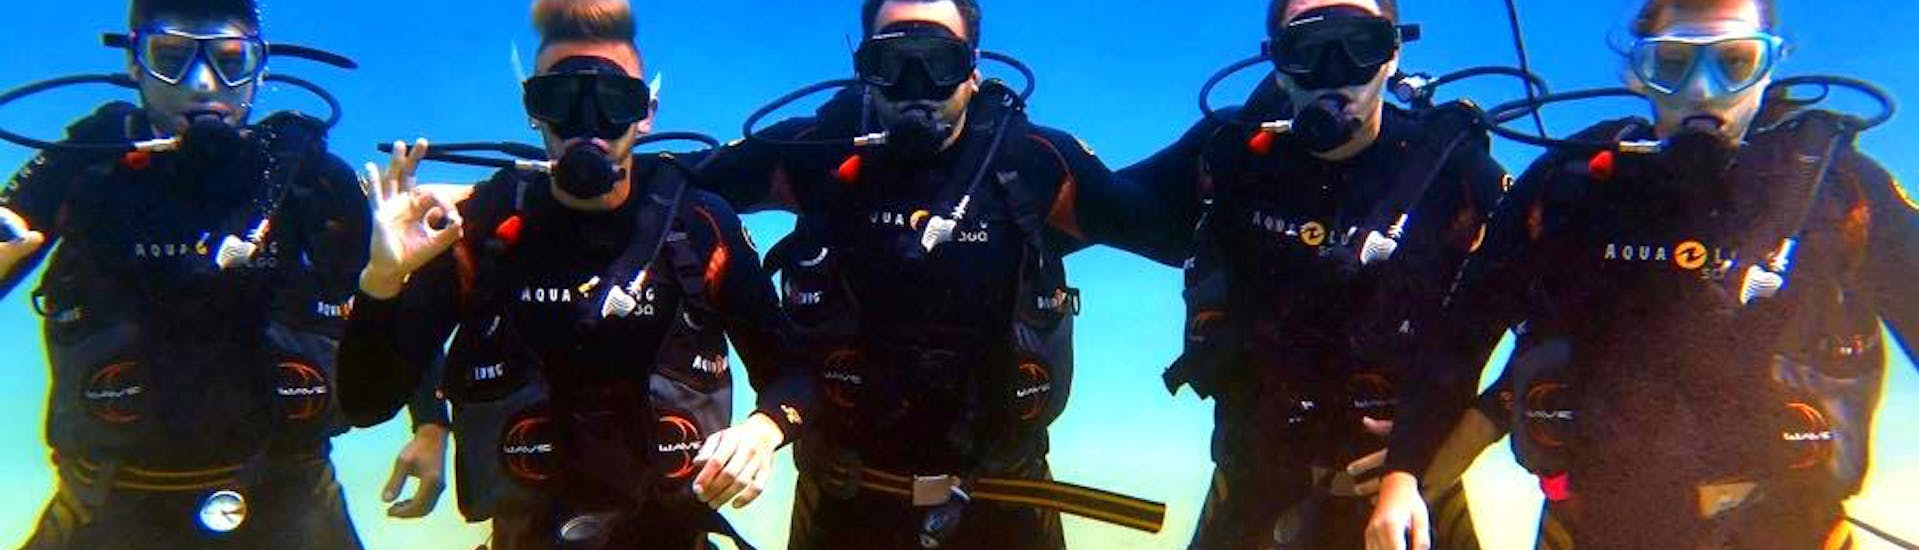 A group of divers having fun on their Scuba Diving Course for Beginners - PADI Open Water Diver together with the experienced instructors from Evelin Dive Center.